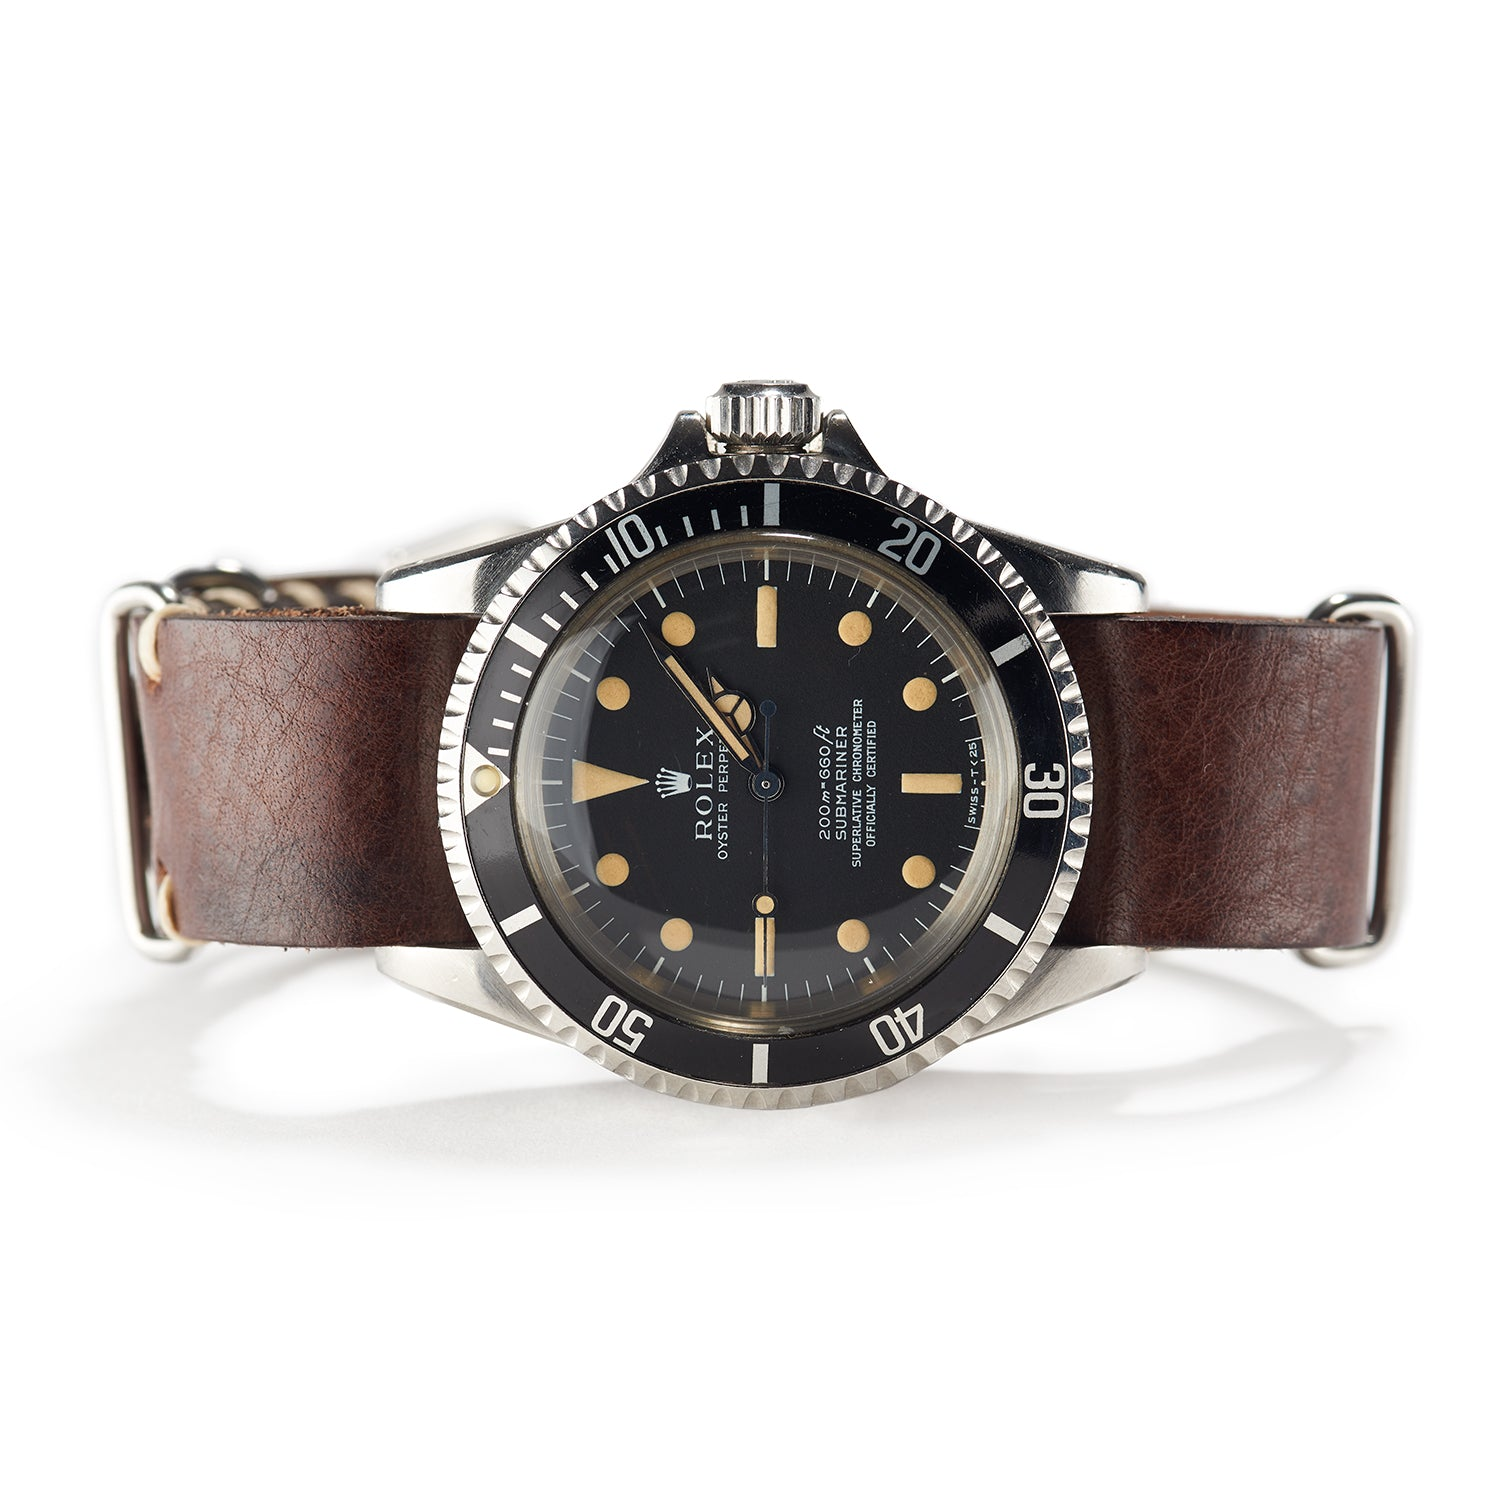 Rolex Submariner Chronometer - Model 5512, 1968